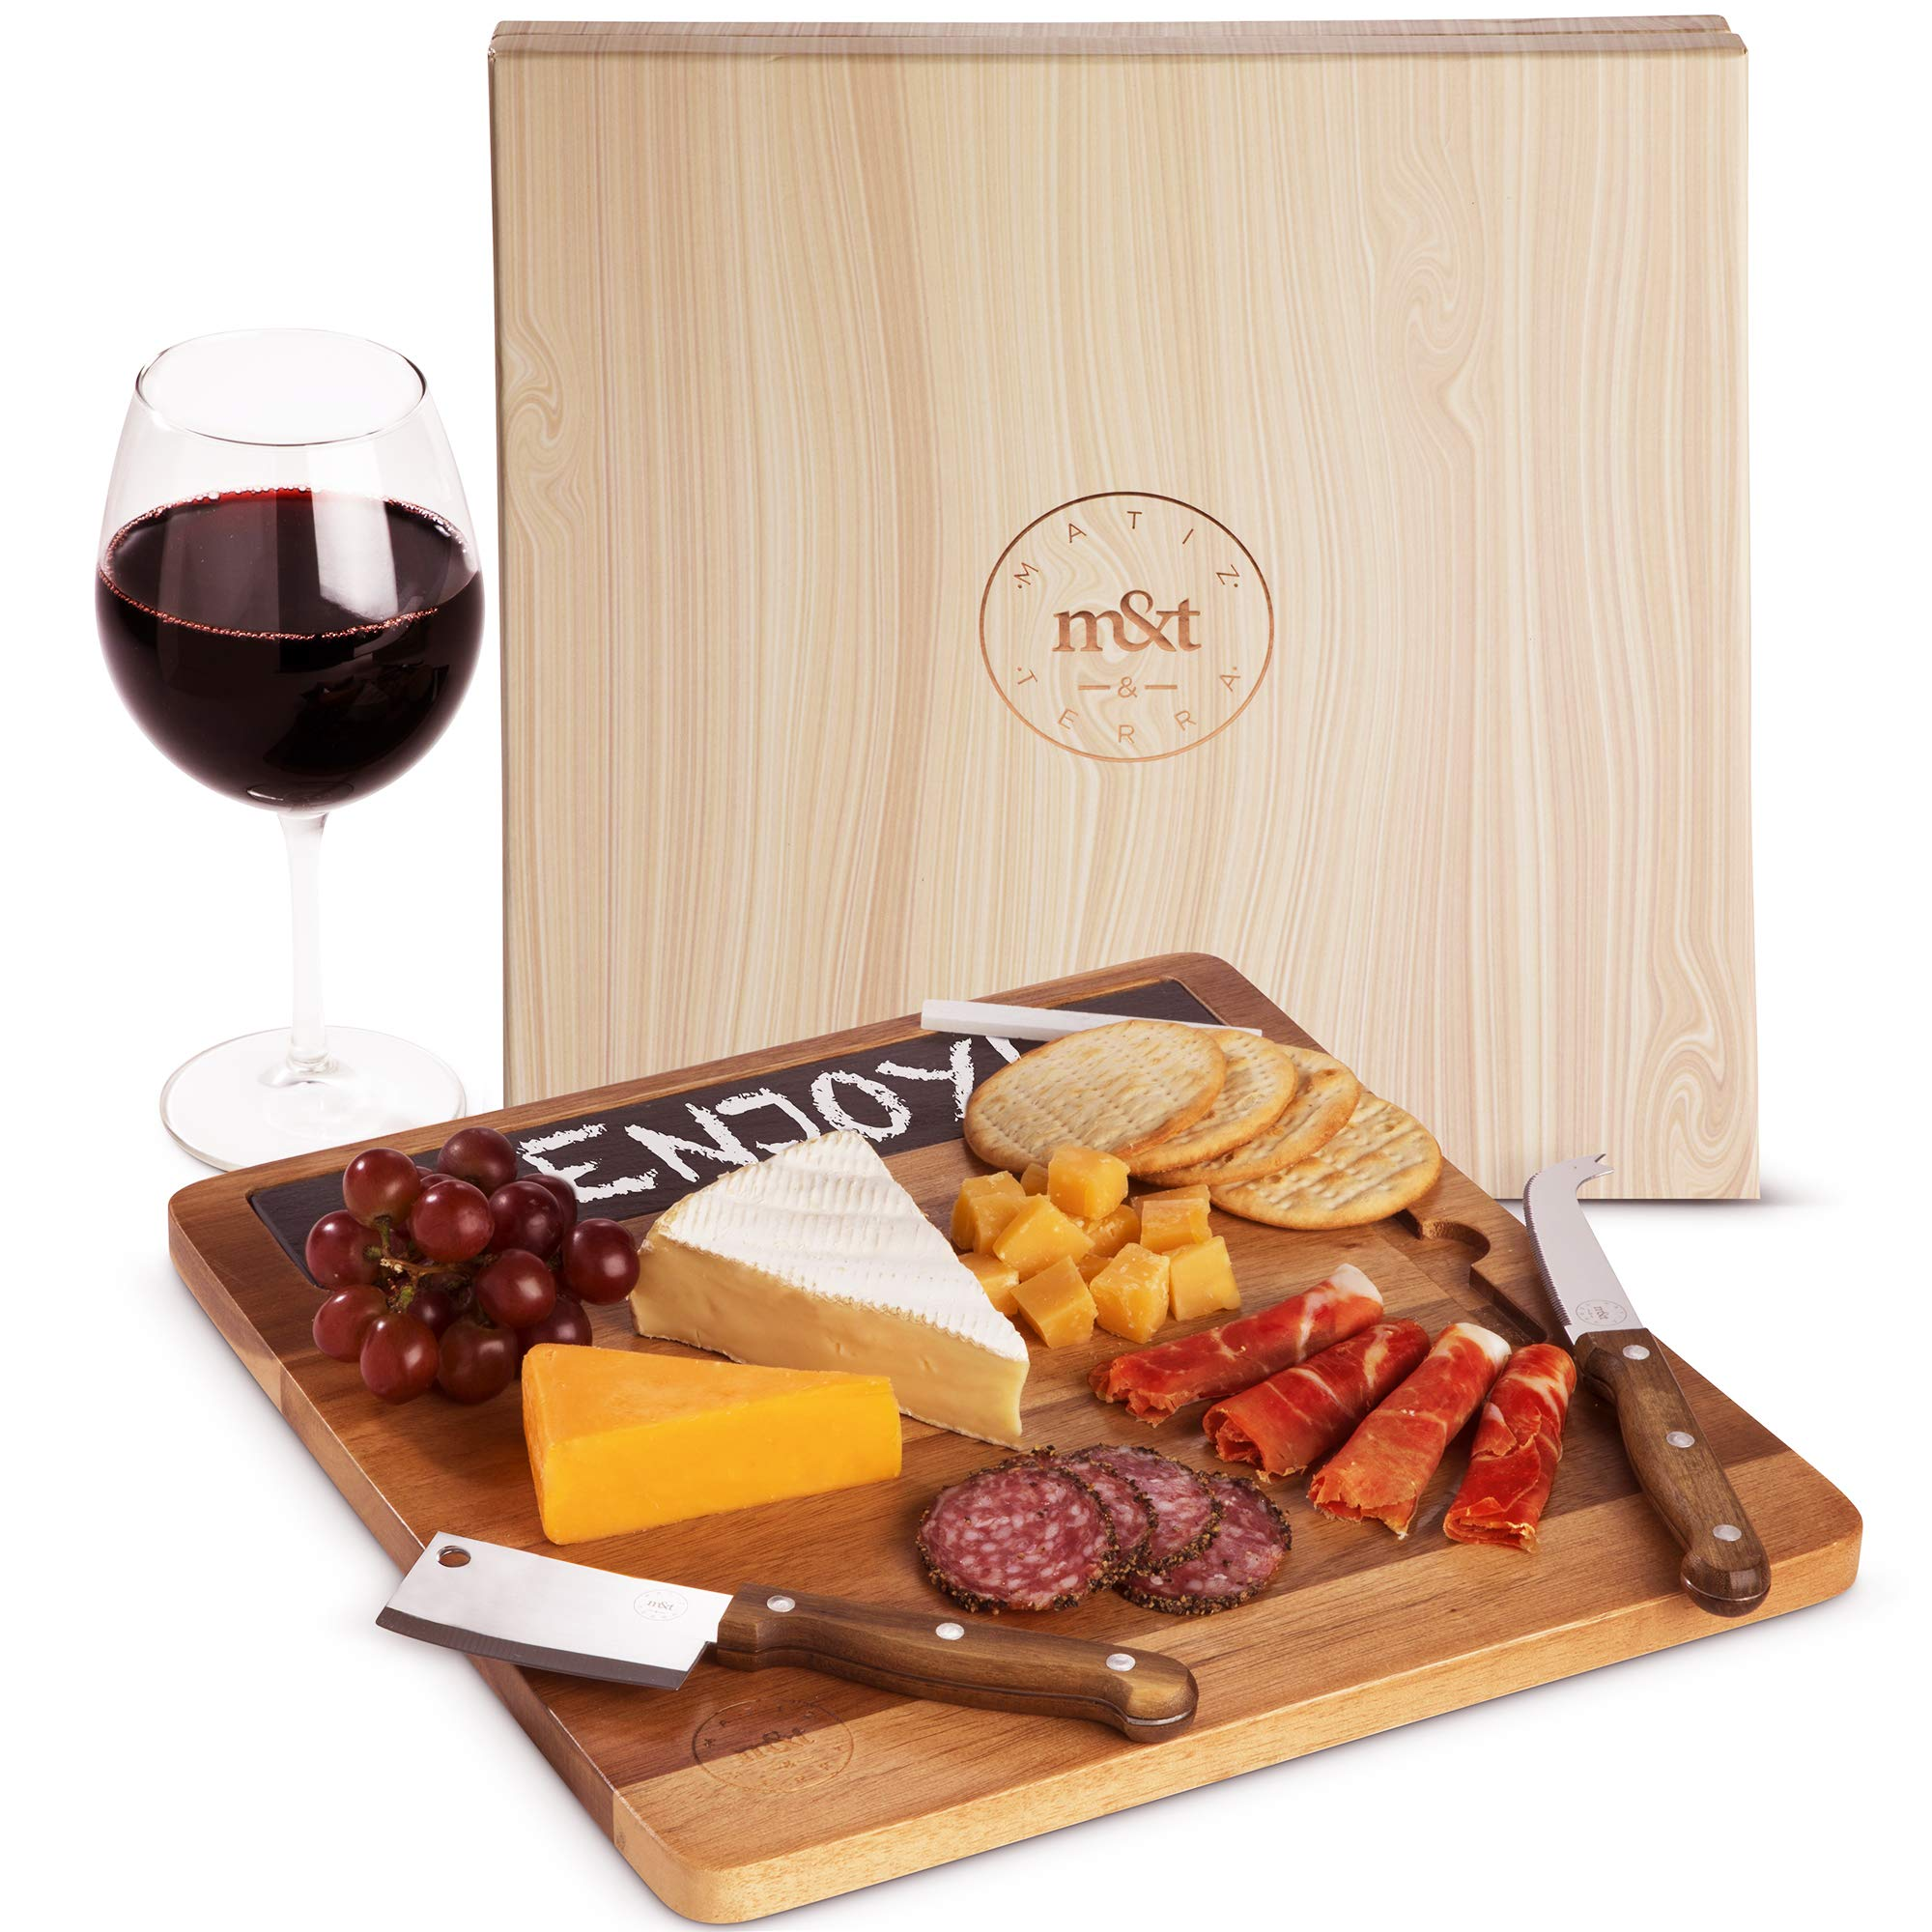 Premium Acacia Wood Charcuterie Cheese Board Set with Knife, Cleaver, Slate, Elegant Gift Box - Meat, Cheese Serving Tray Platter - Eco-Friendly Wooden Cutting Boards for Kitchen, Parties, Appetizers